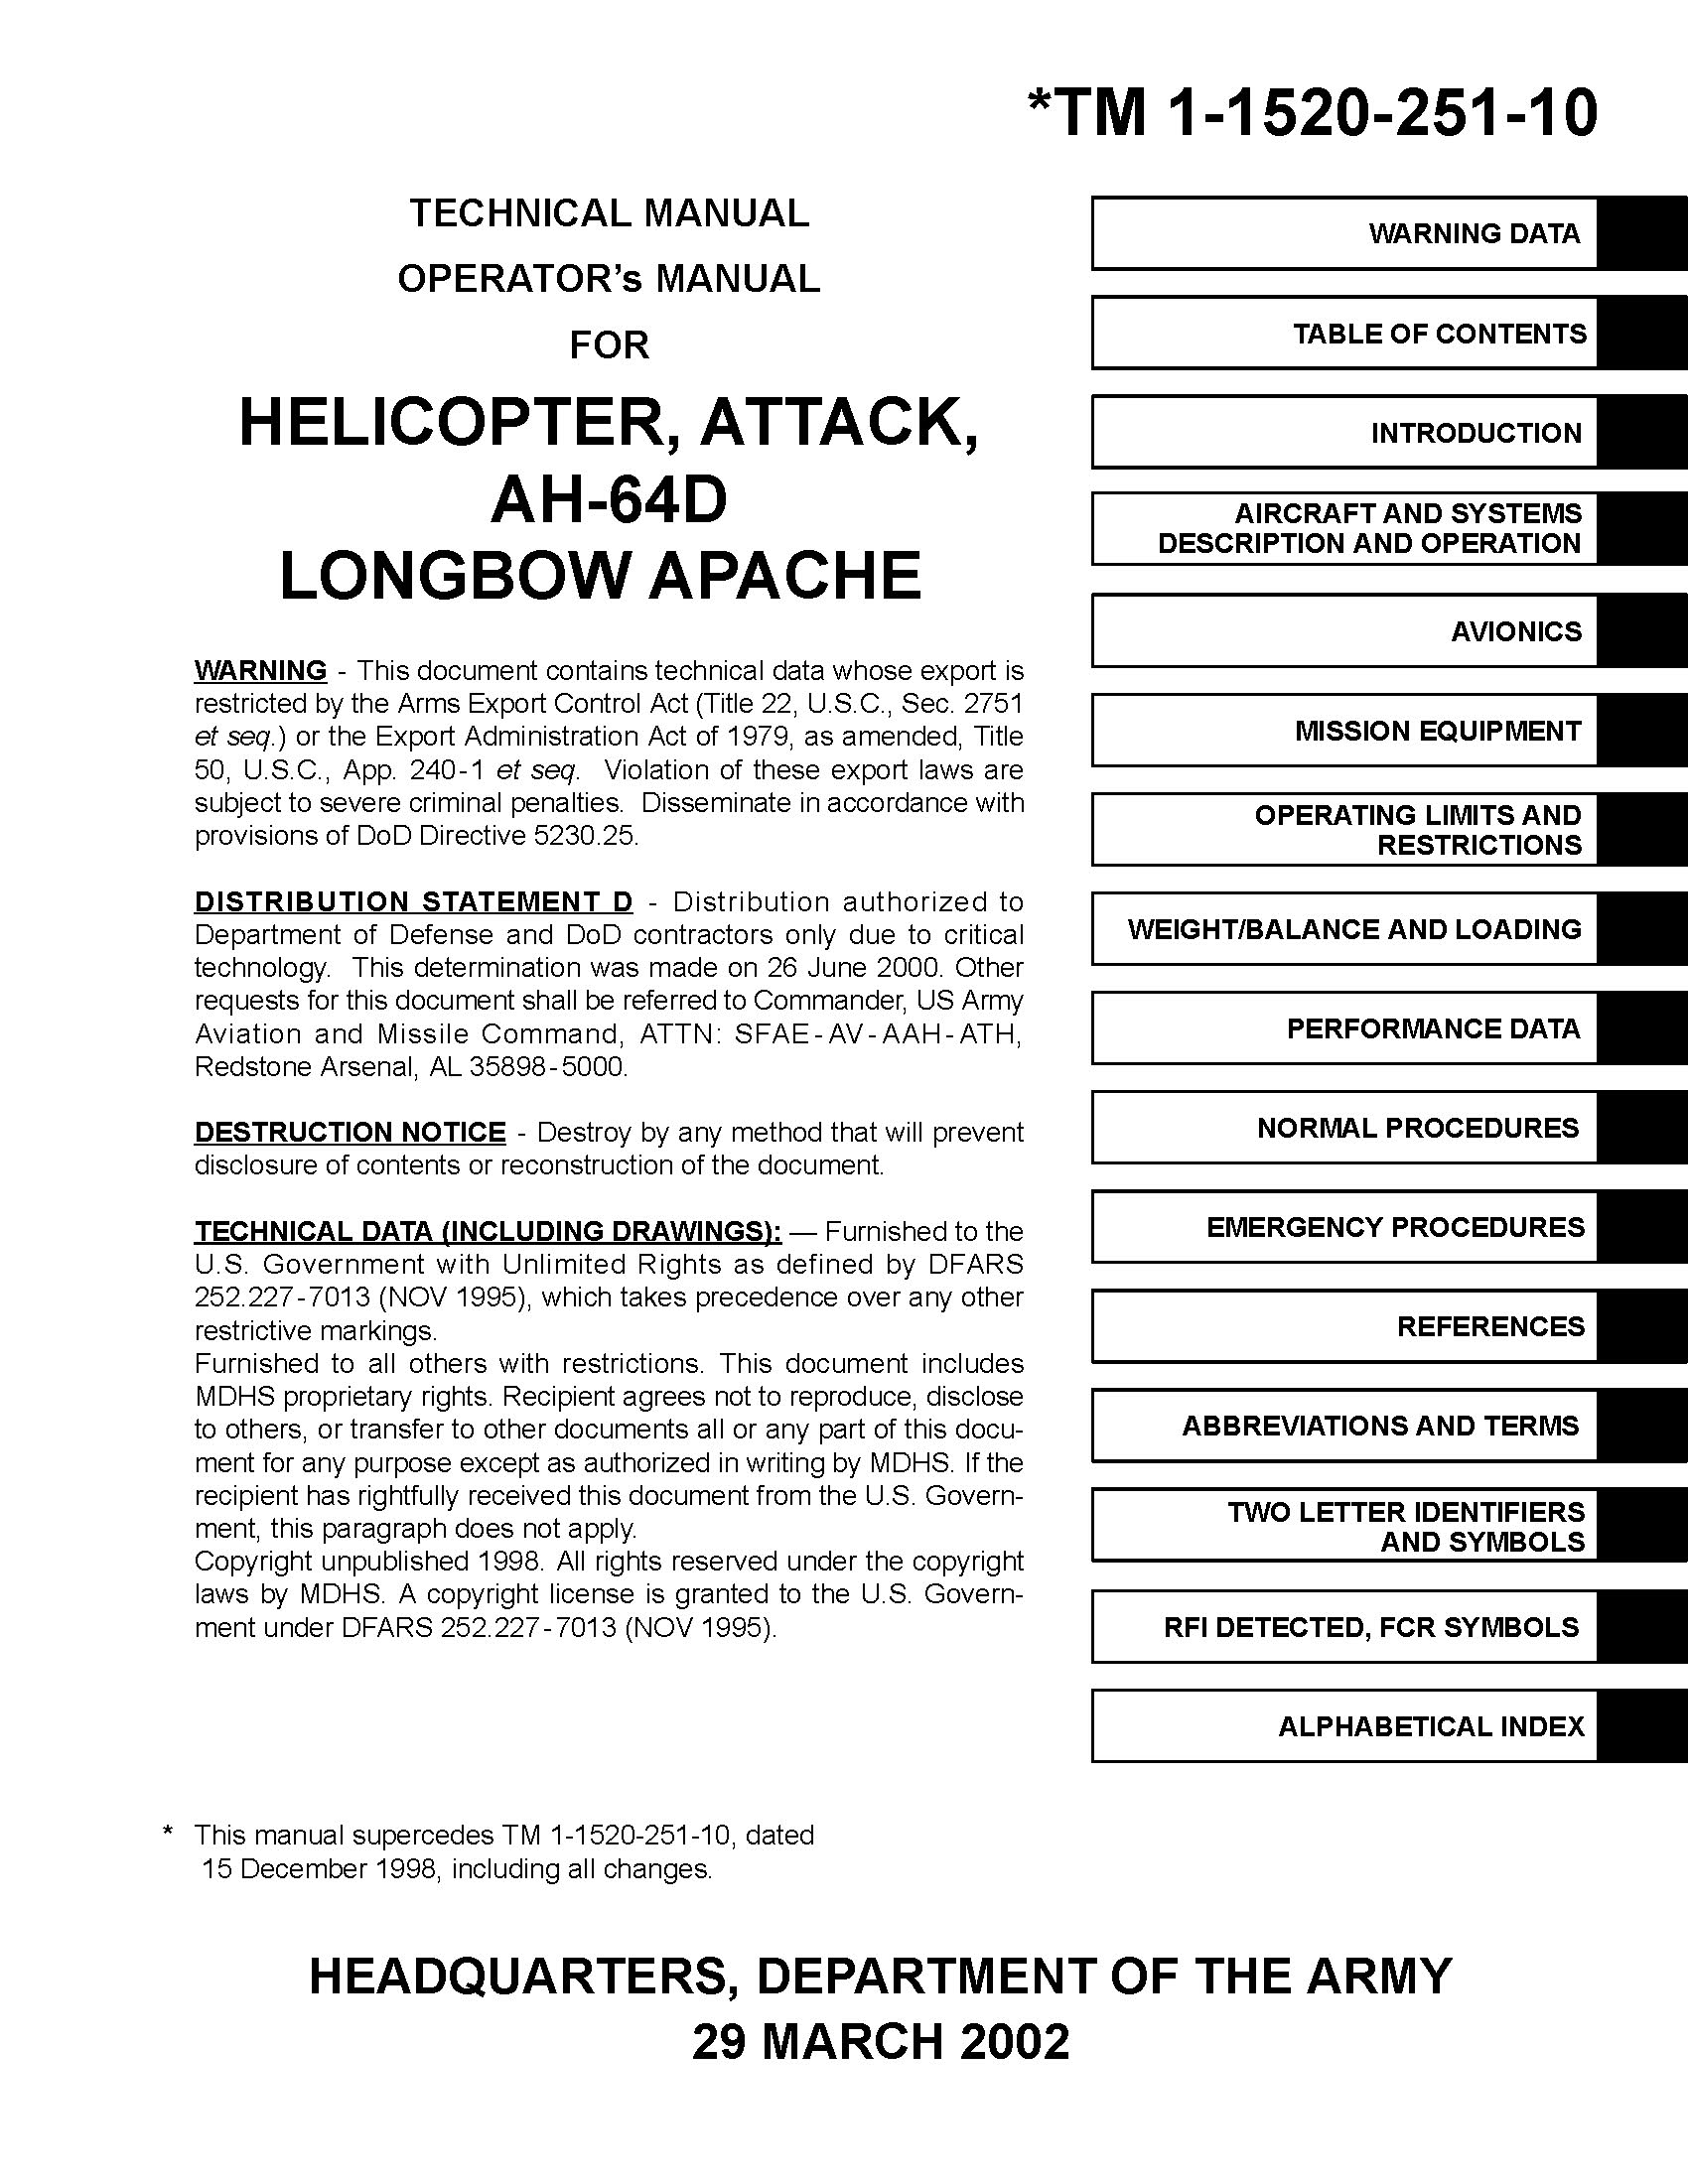 US Army Apache Longbow AH-64D Attack Helicopter Operator's Manual